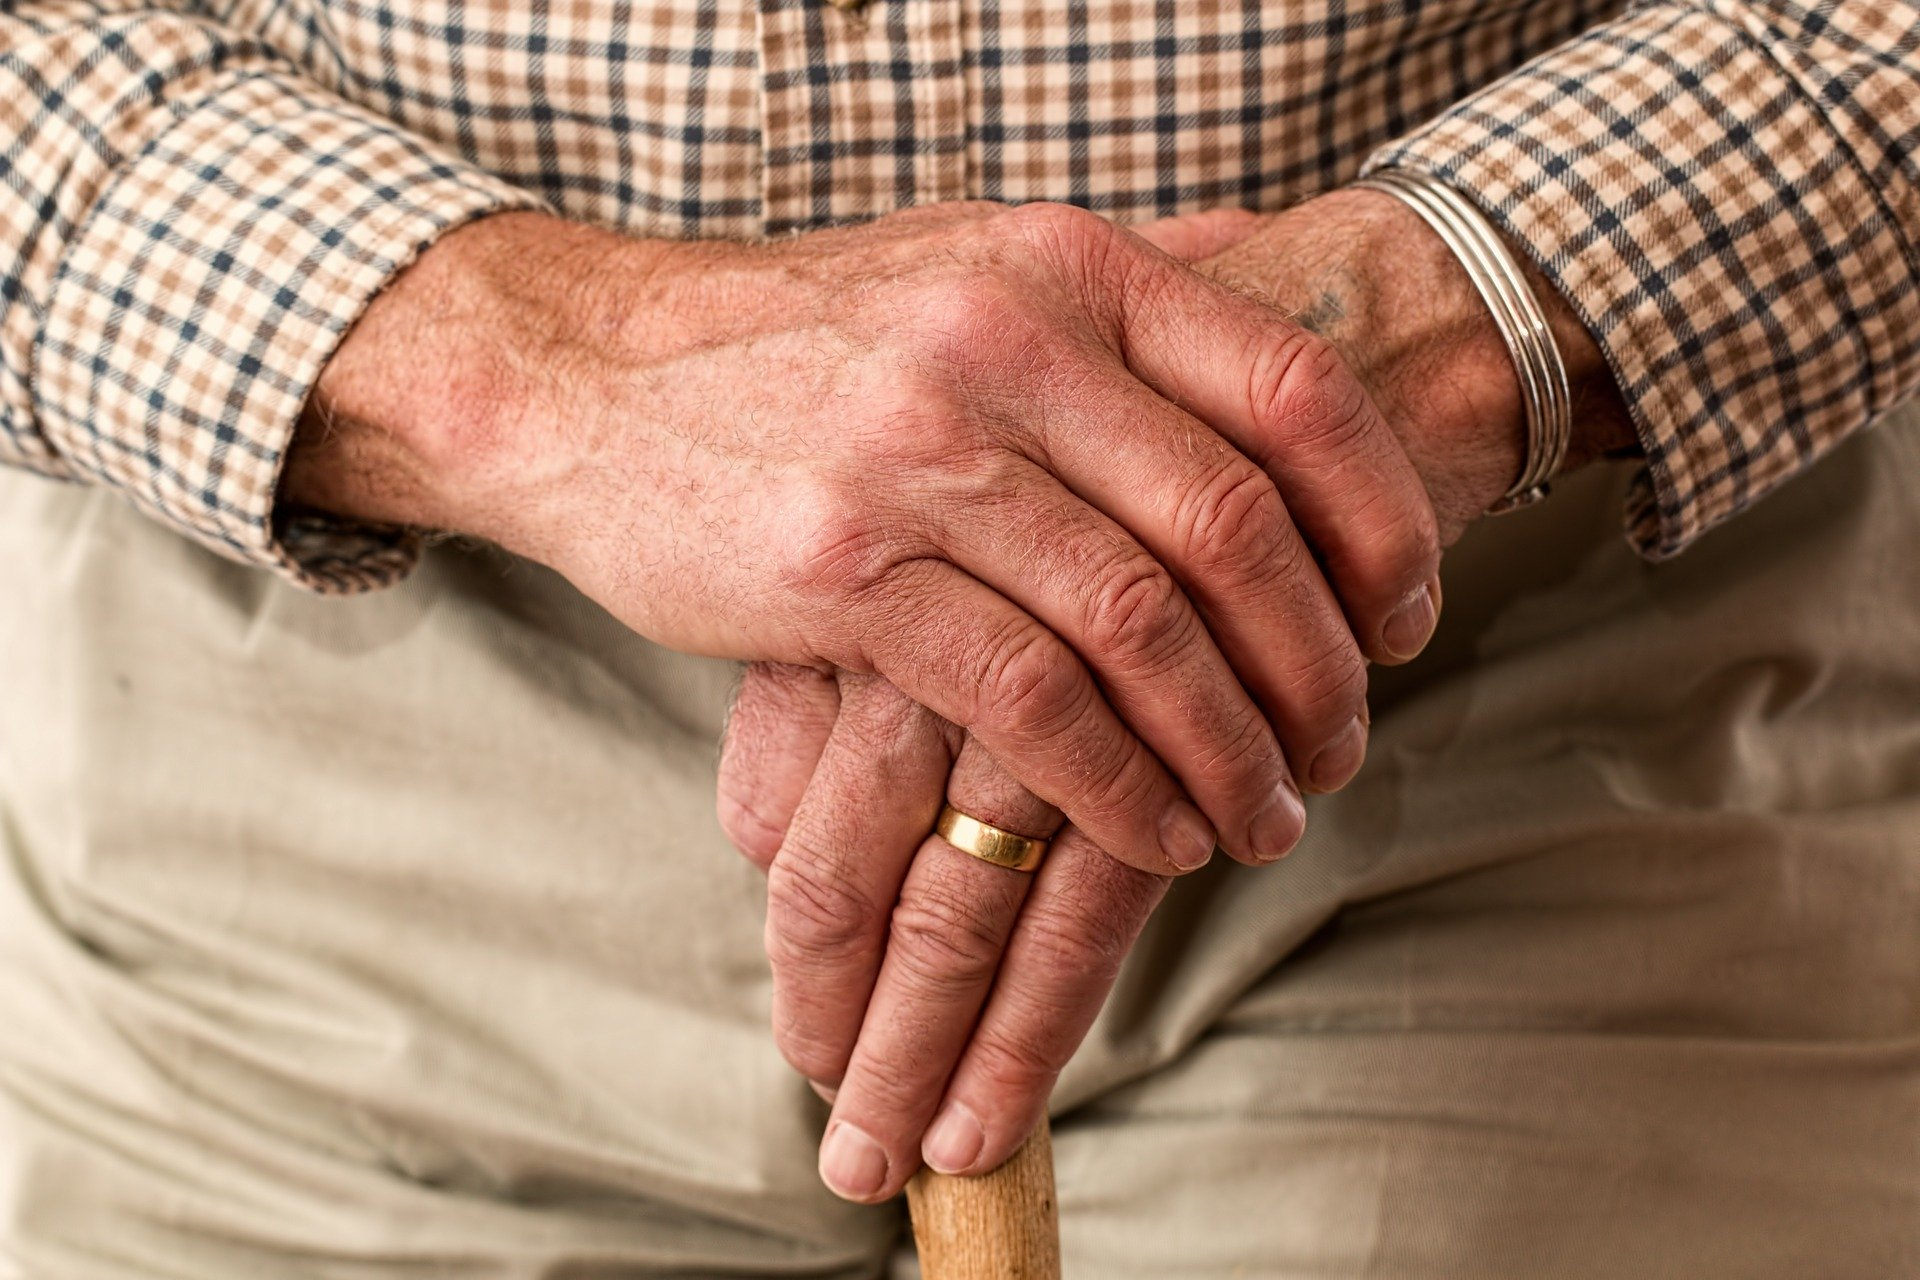 An image of an elderly man's hands holding a walking stick